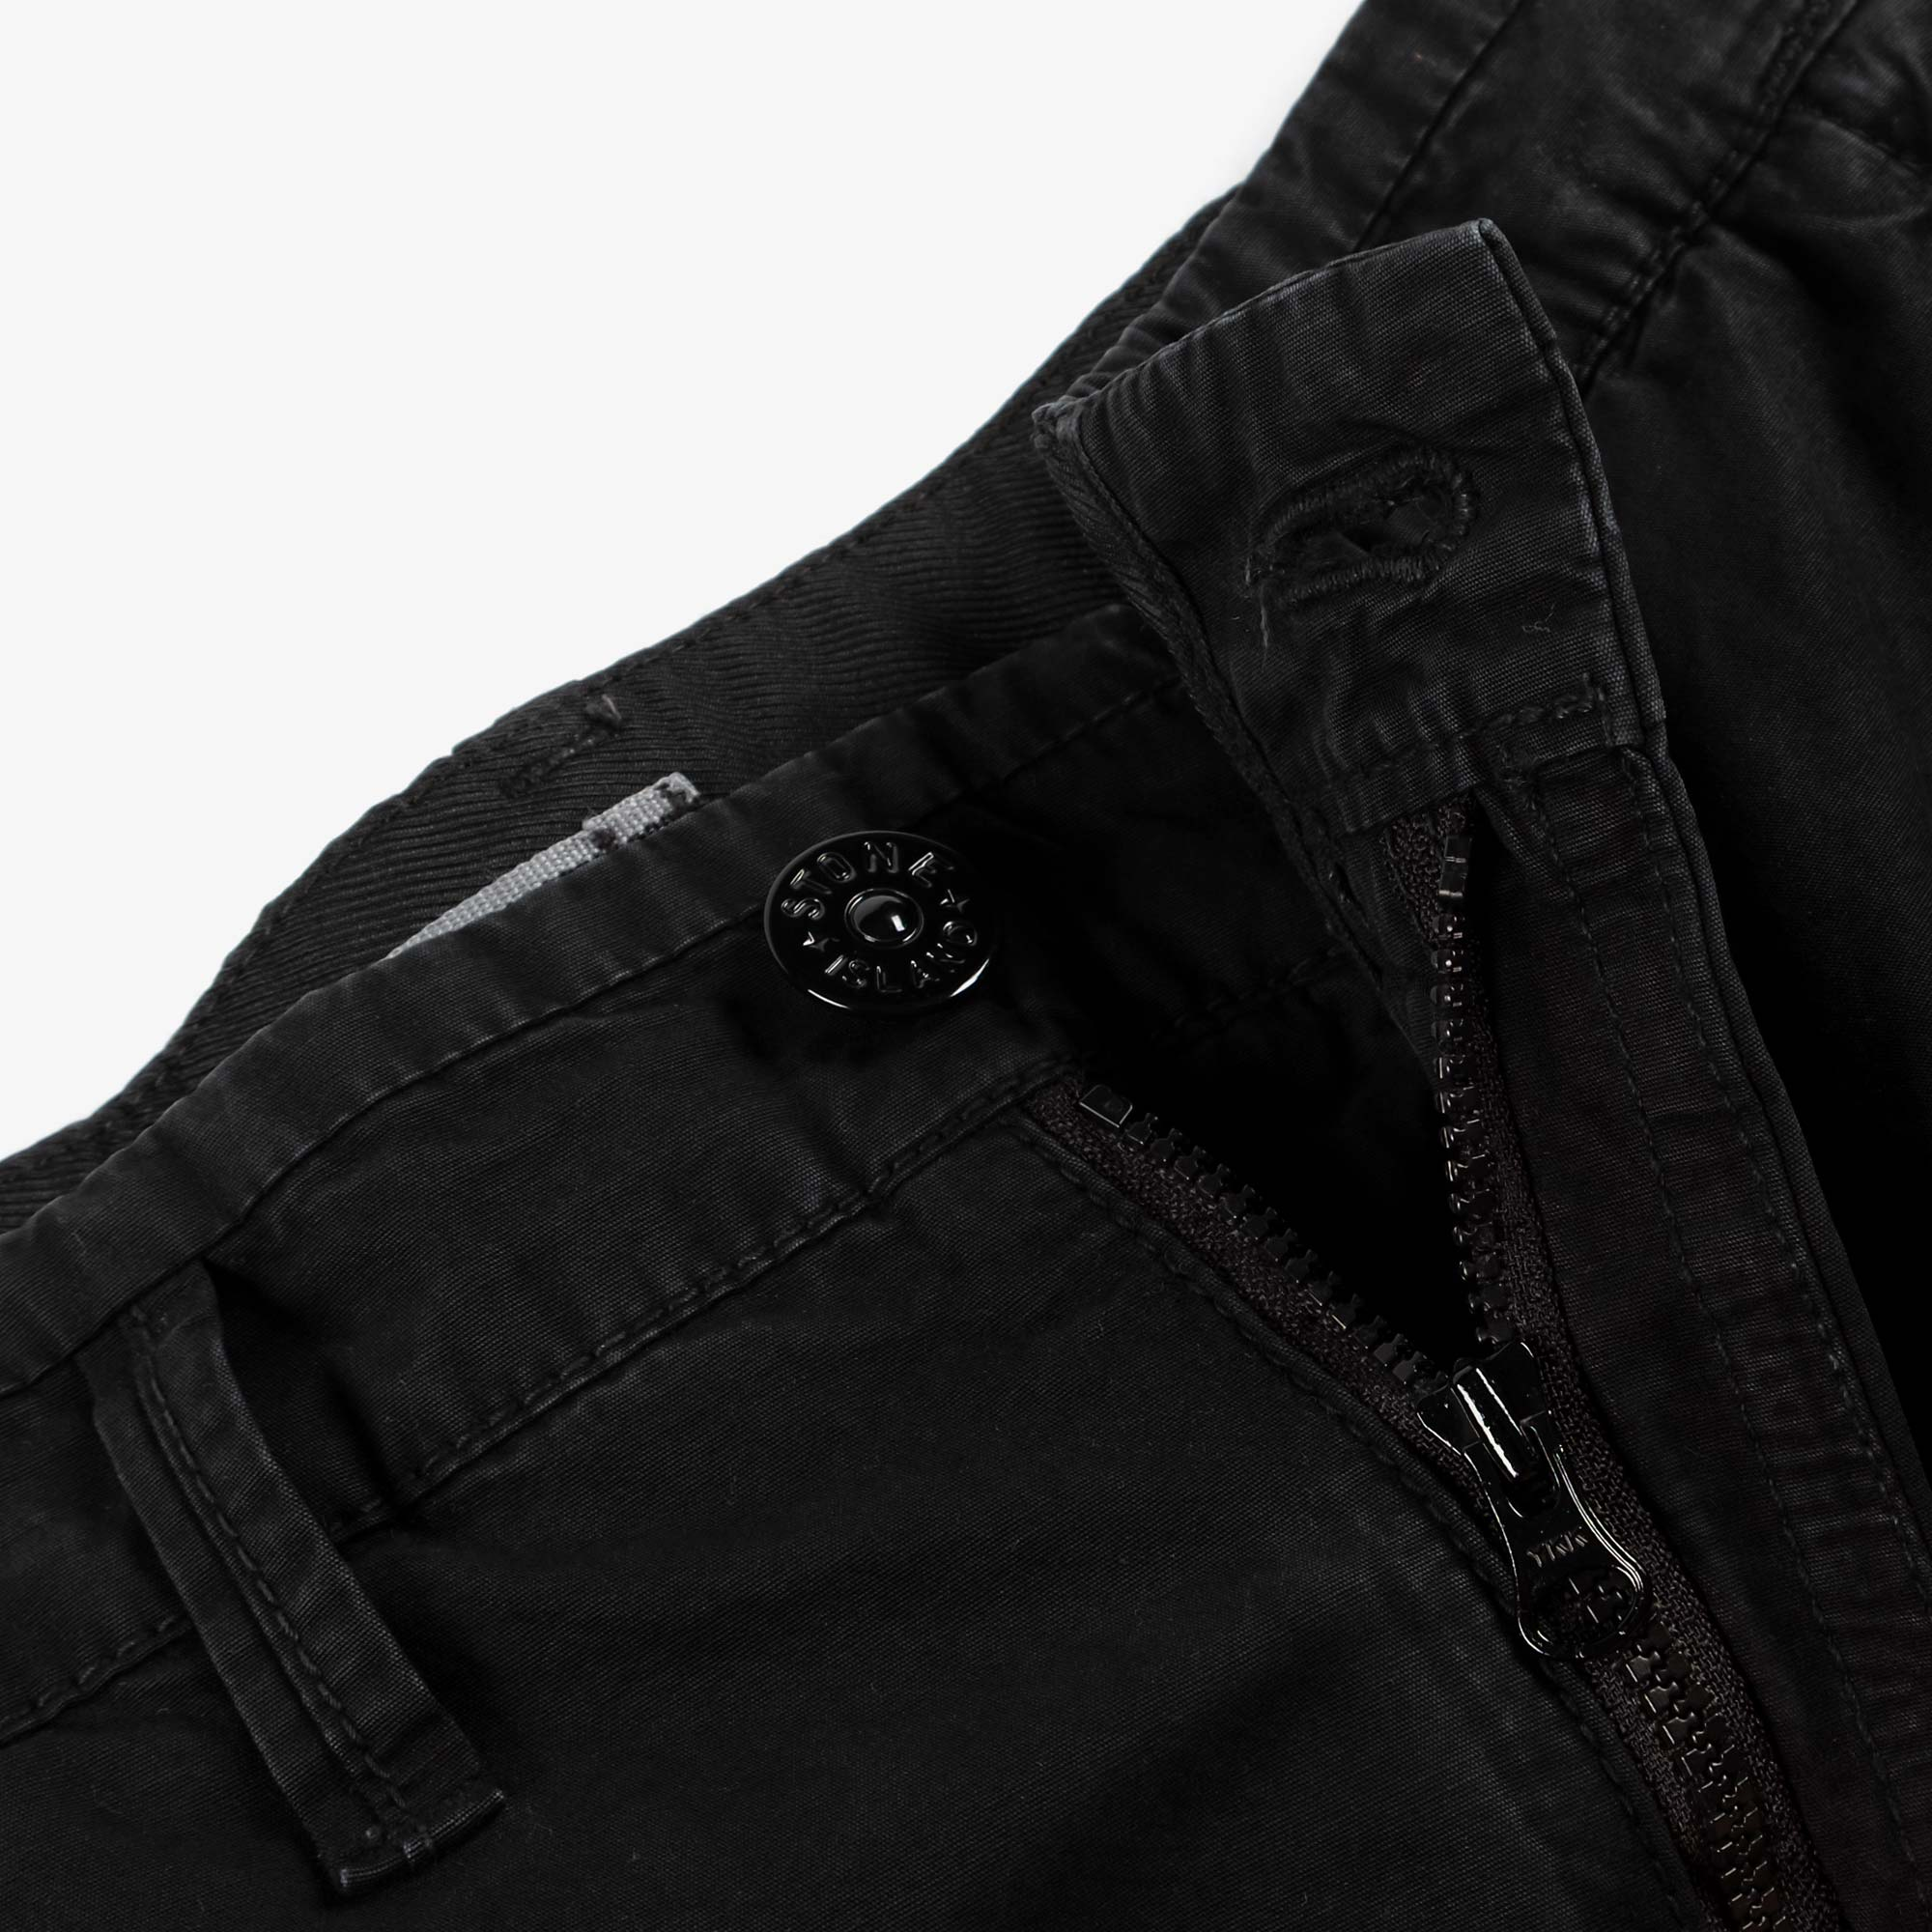 Stone Island T.CO Old Effect Cargo Pant 7415319WA - Black 5